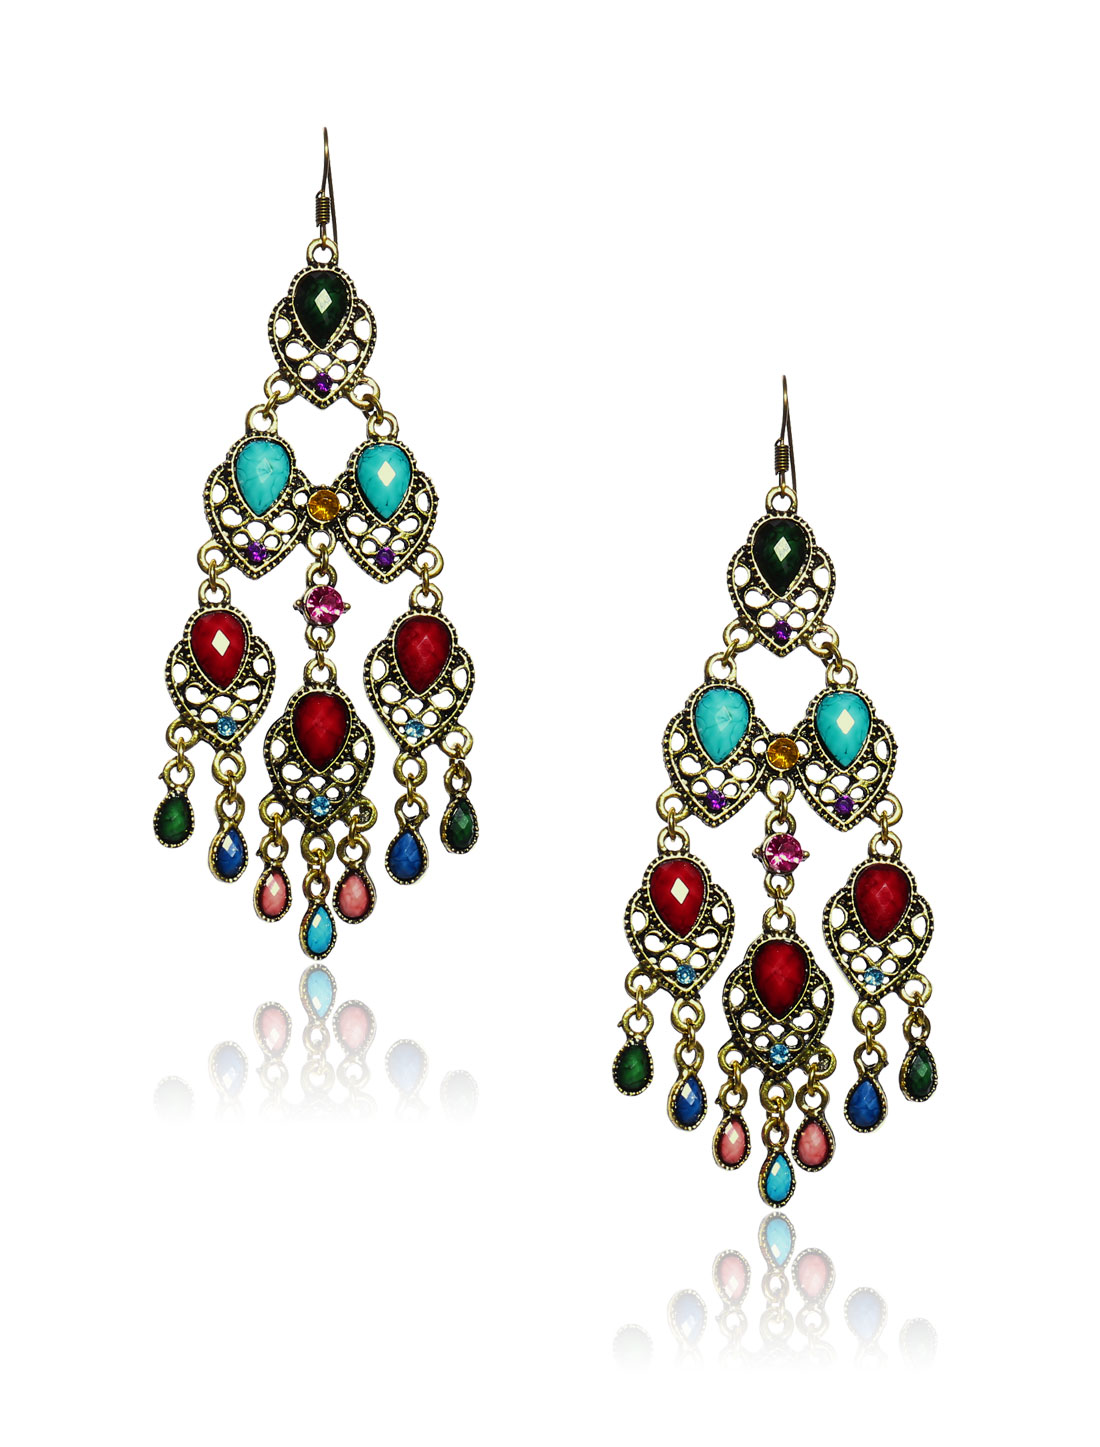 Women Retro Multi-colored three-layer Shaped Crystal Resin Drop Dangle Hook Earring Ear Stud